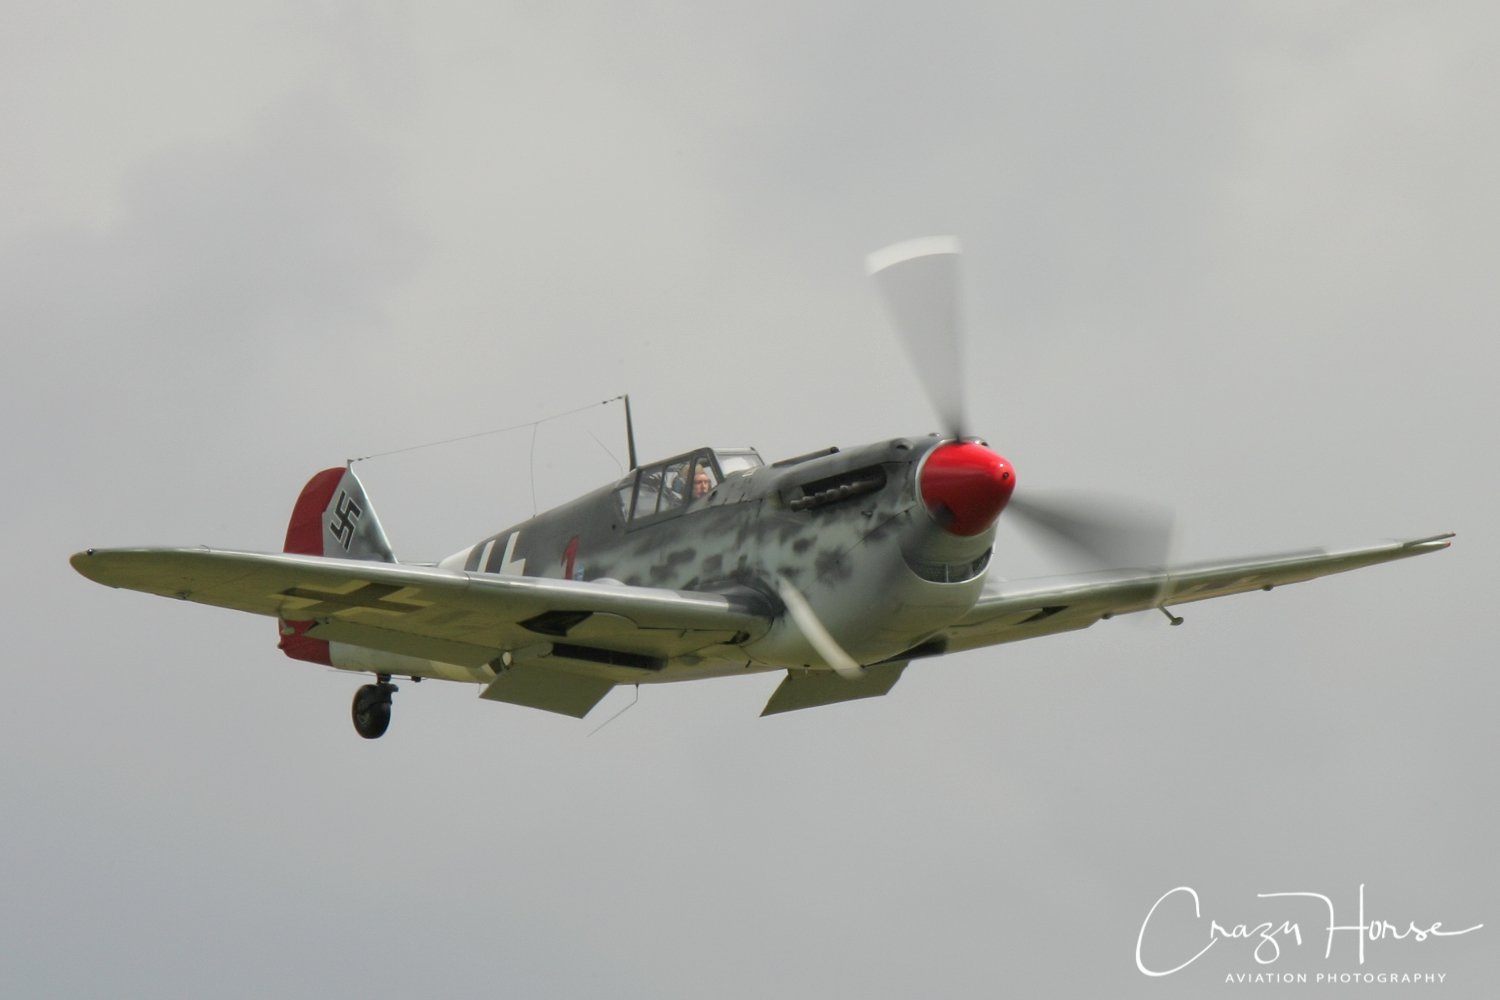 Flying Legends 2008 037